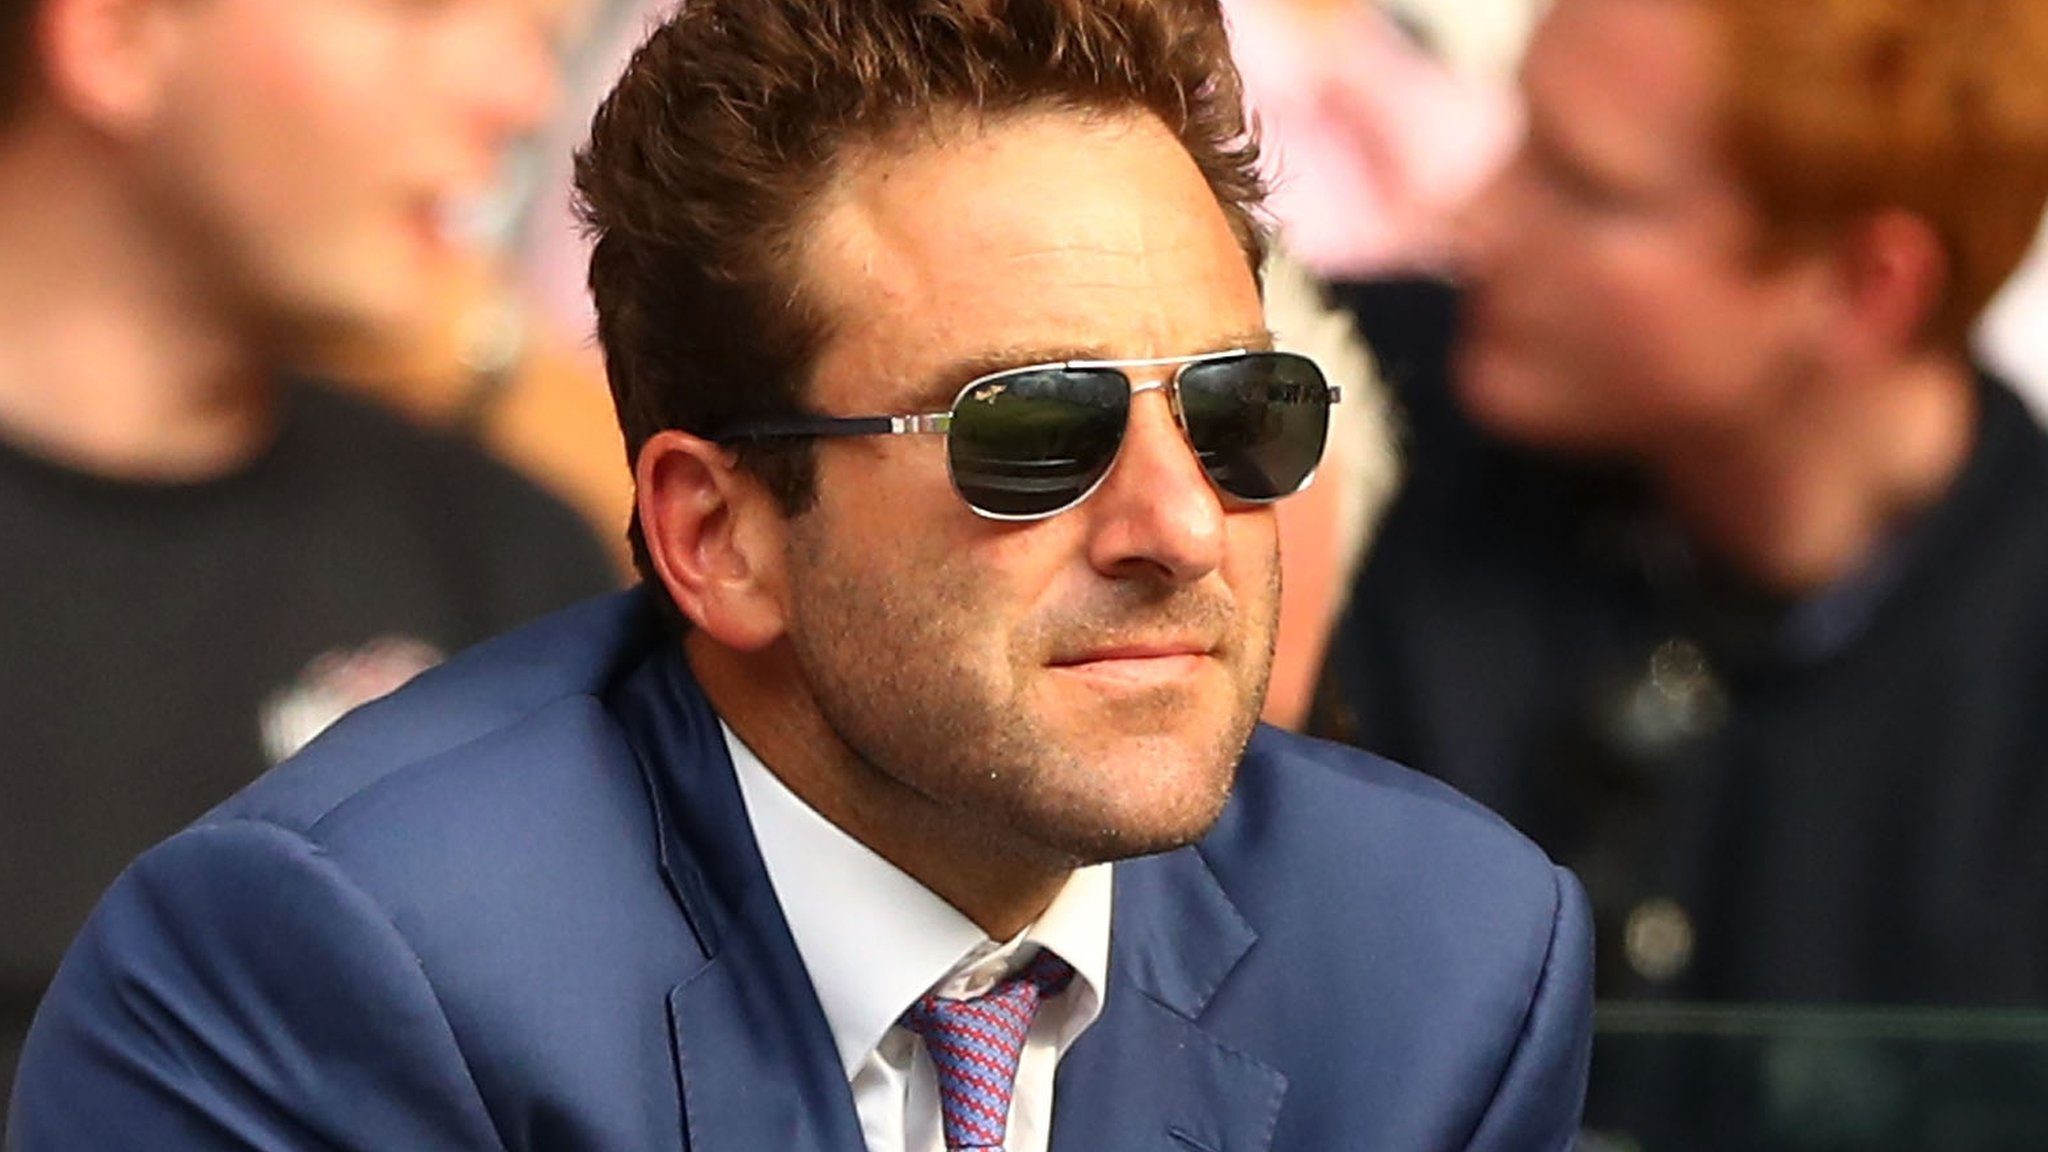 Justin Gimelstob pleads not guilty to assault in Los Angeles